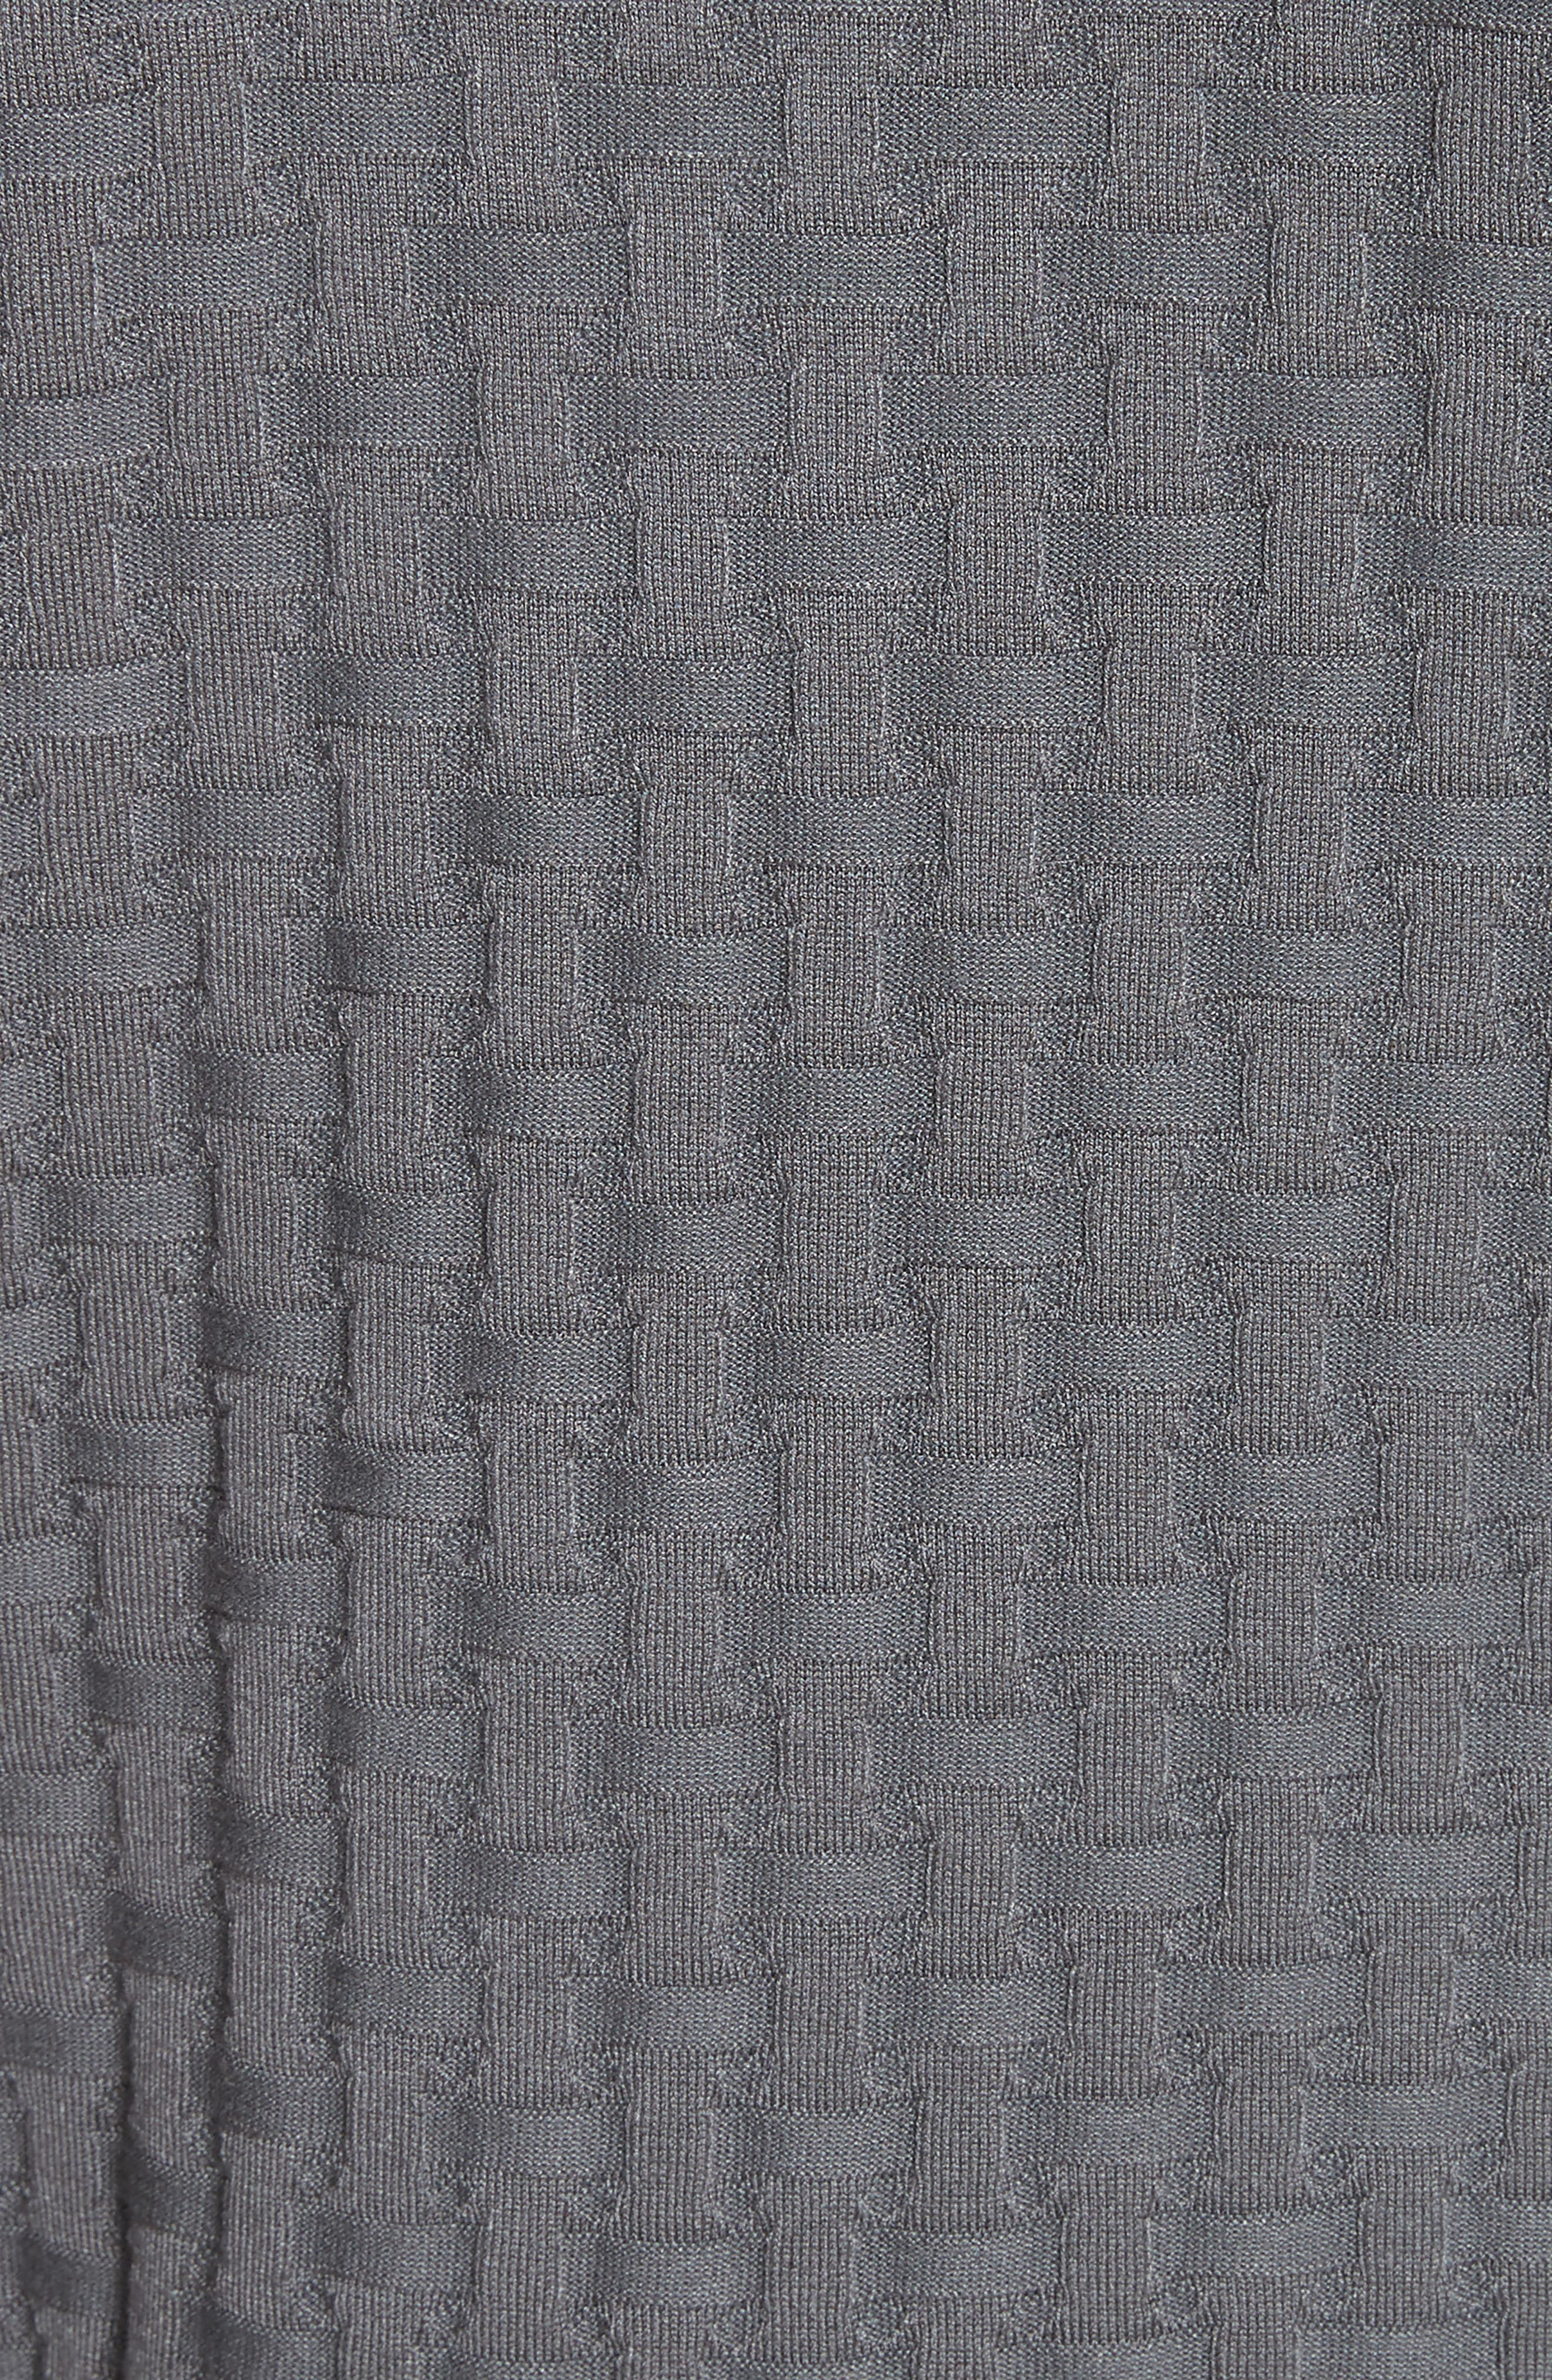 Slim Fit Woven Links Sweater,                             Alternate thumbnail 5, color,                             Pietra